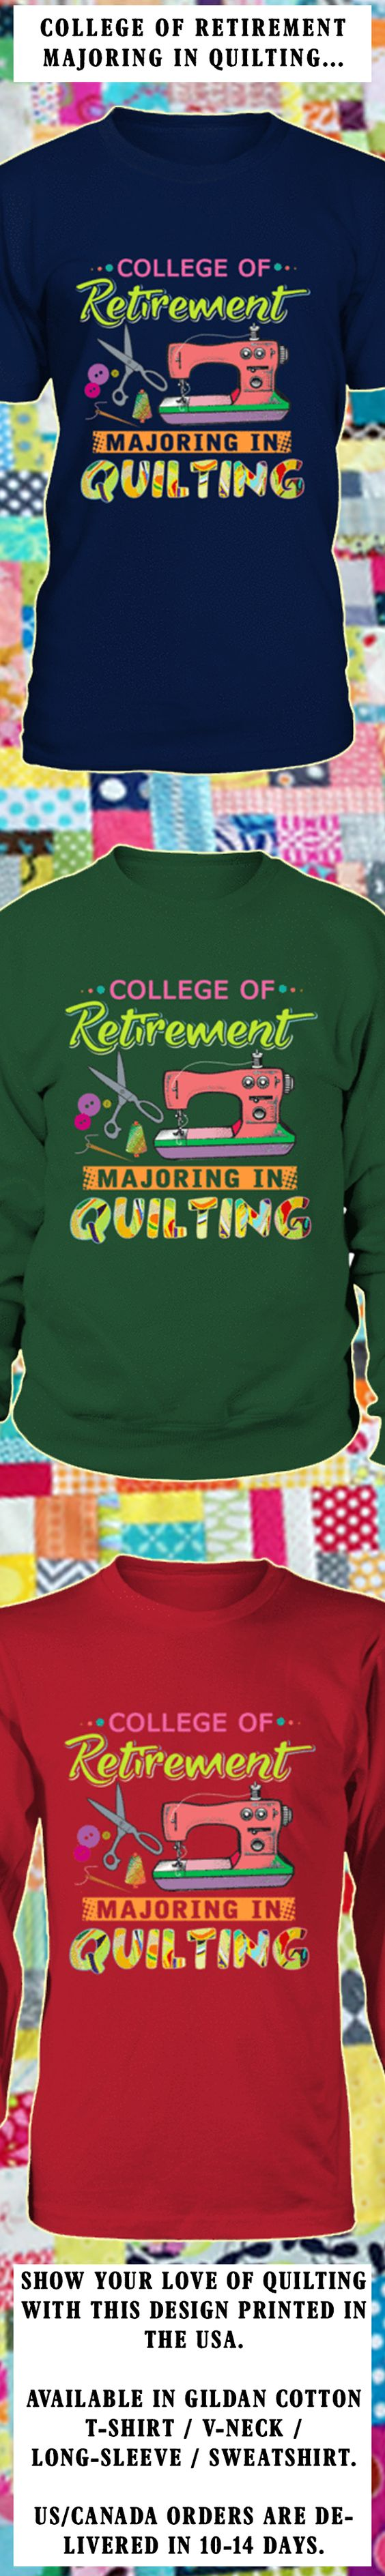 quilting college of and retirement college of retirement majoring in quilting show your love of quilting this